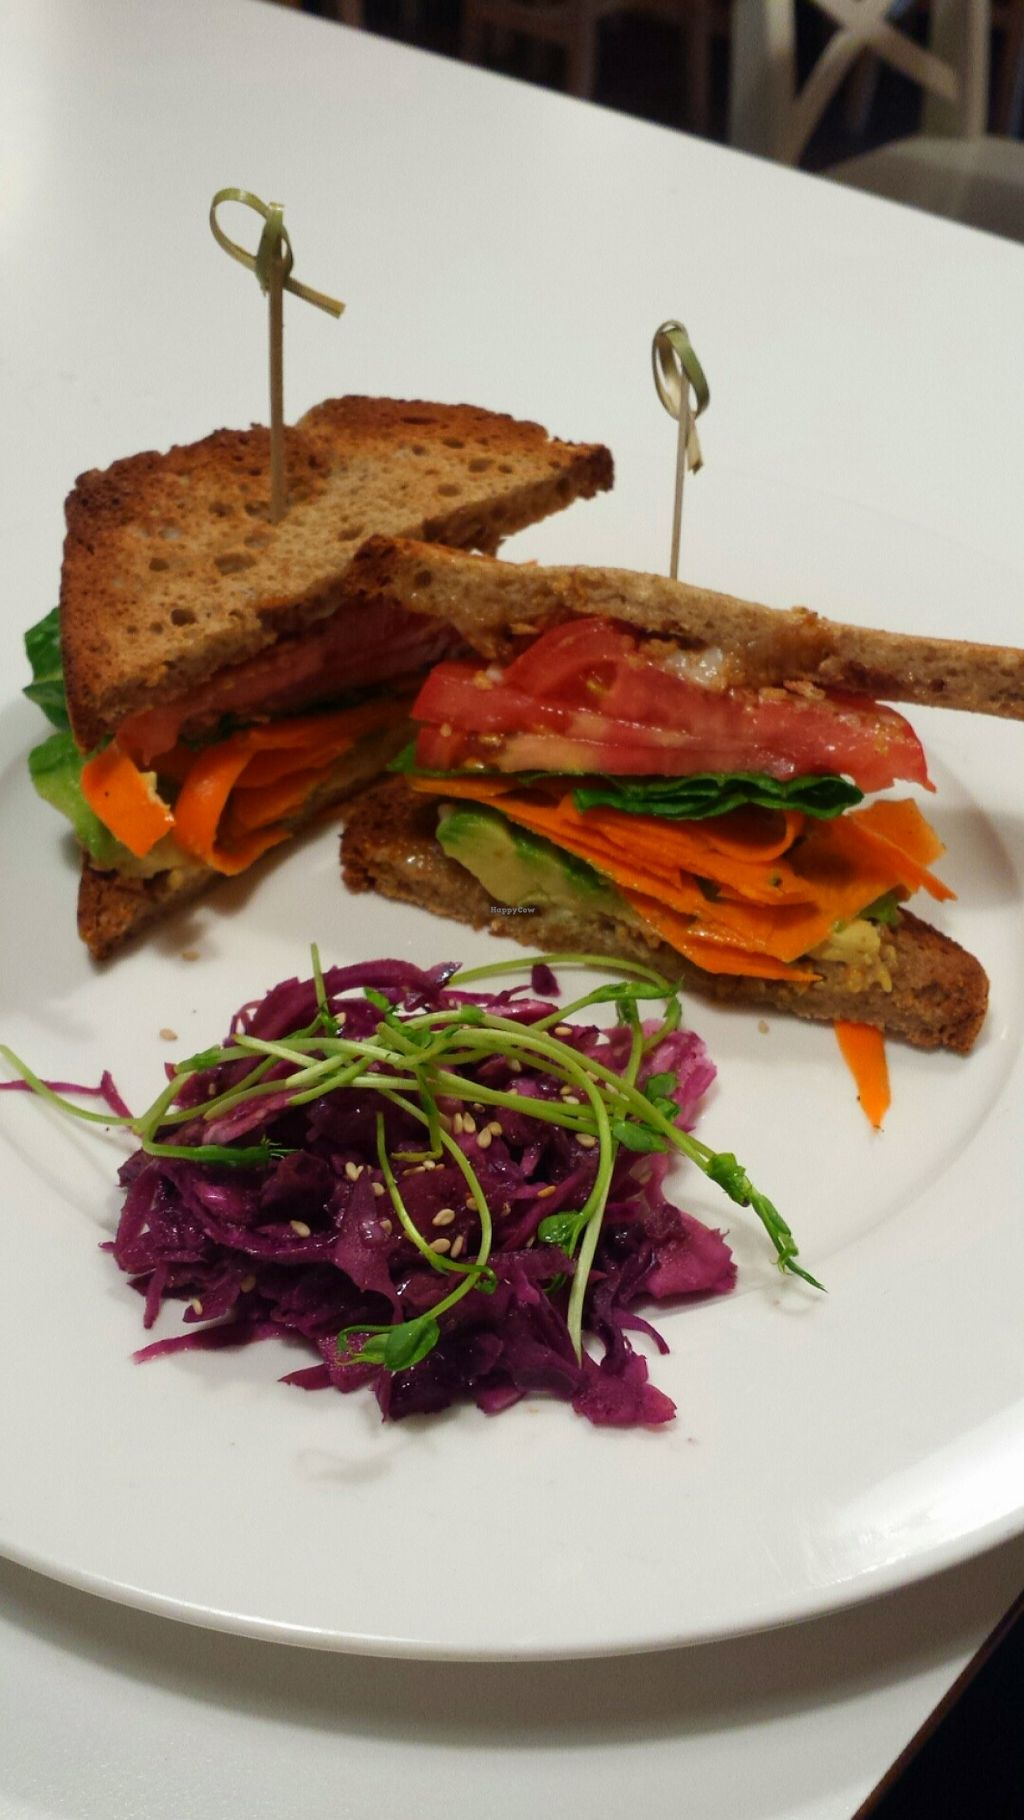 "Photo of Lettuce Love Cafe  by <a href=""/members/profile/Vegan%20BB"">Vegan BB</a> <br/>B.L.A.T <br/> February 20, 2016  - <a href='/contact/abuse/image/21598/137079'>Report</a>"